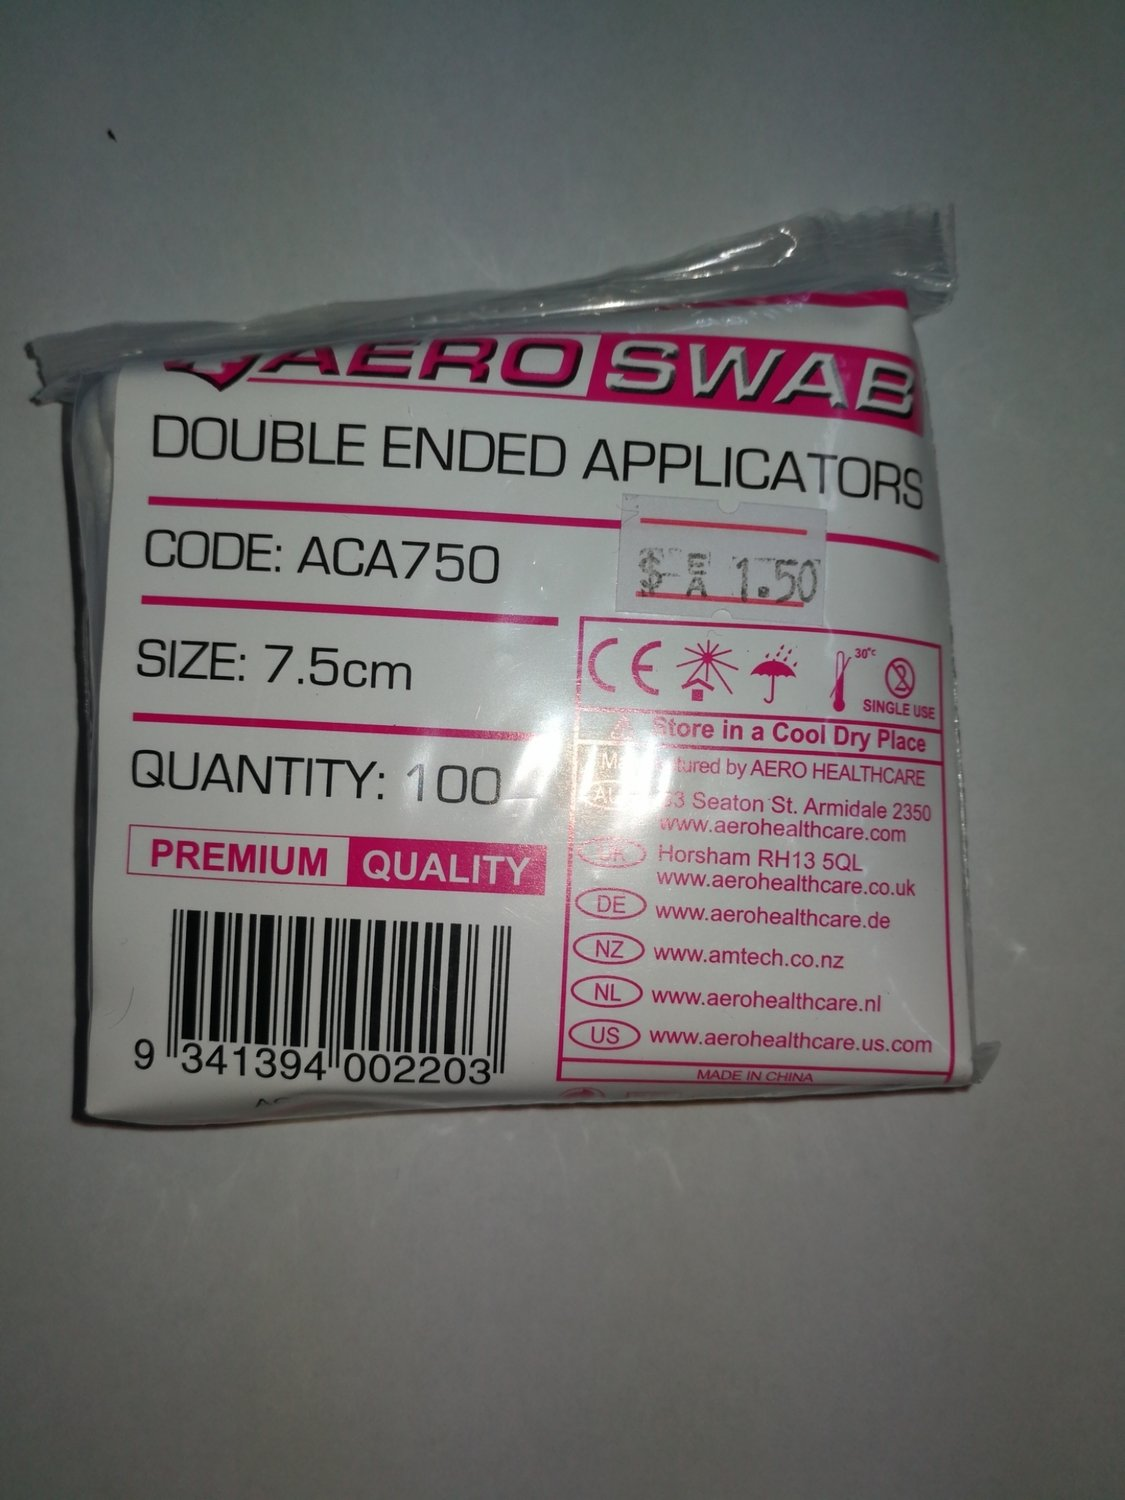 Double Ended Applicators